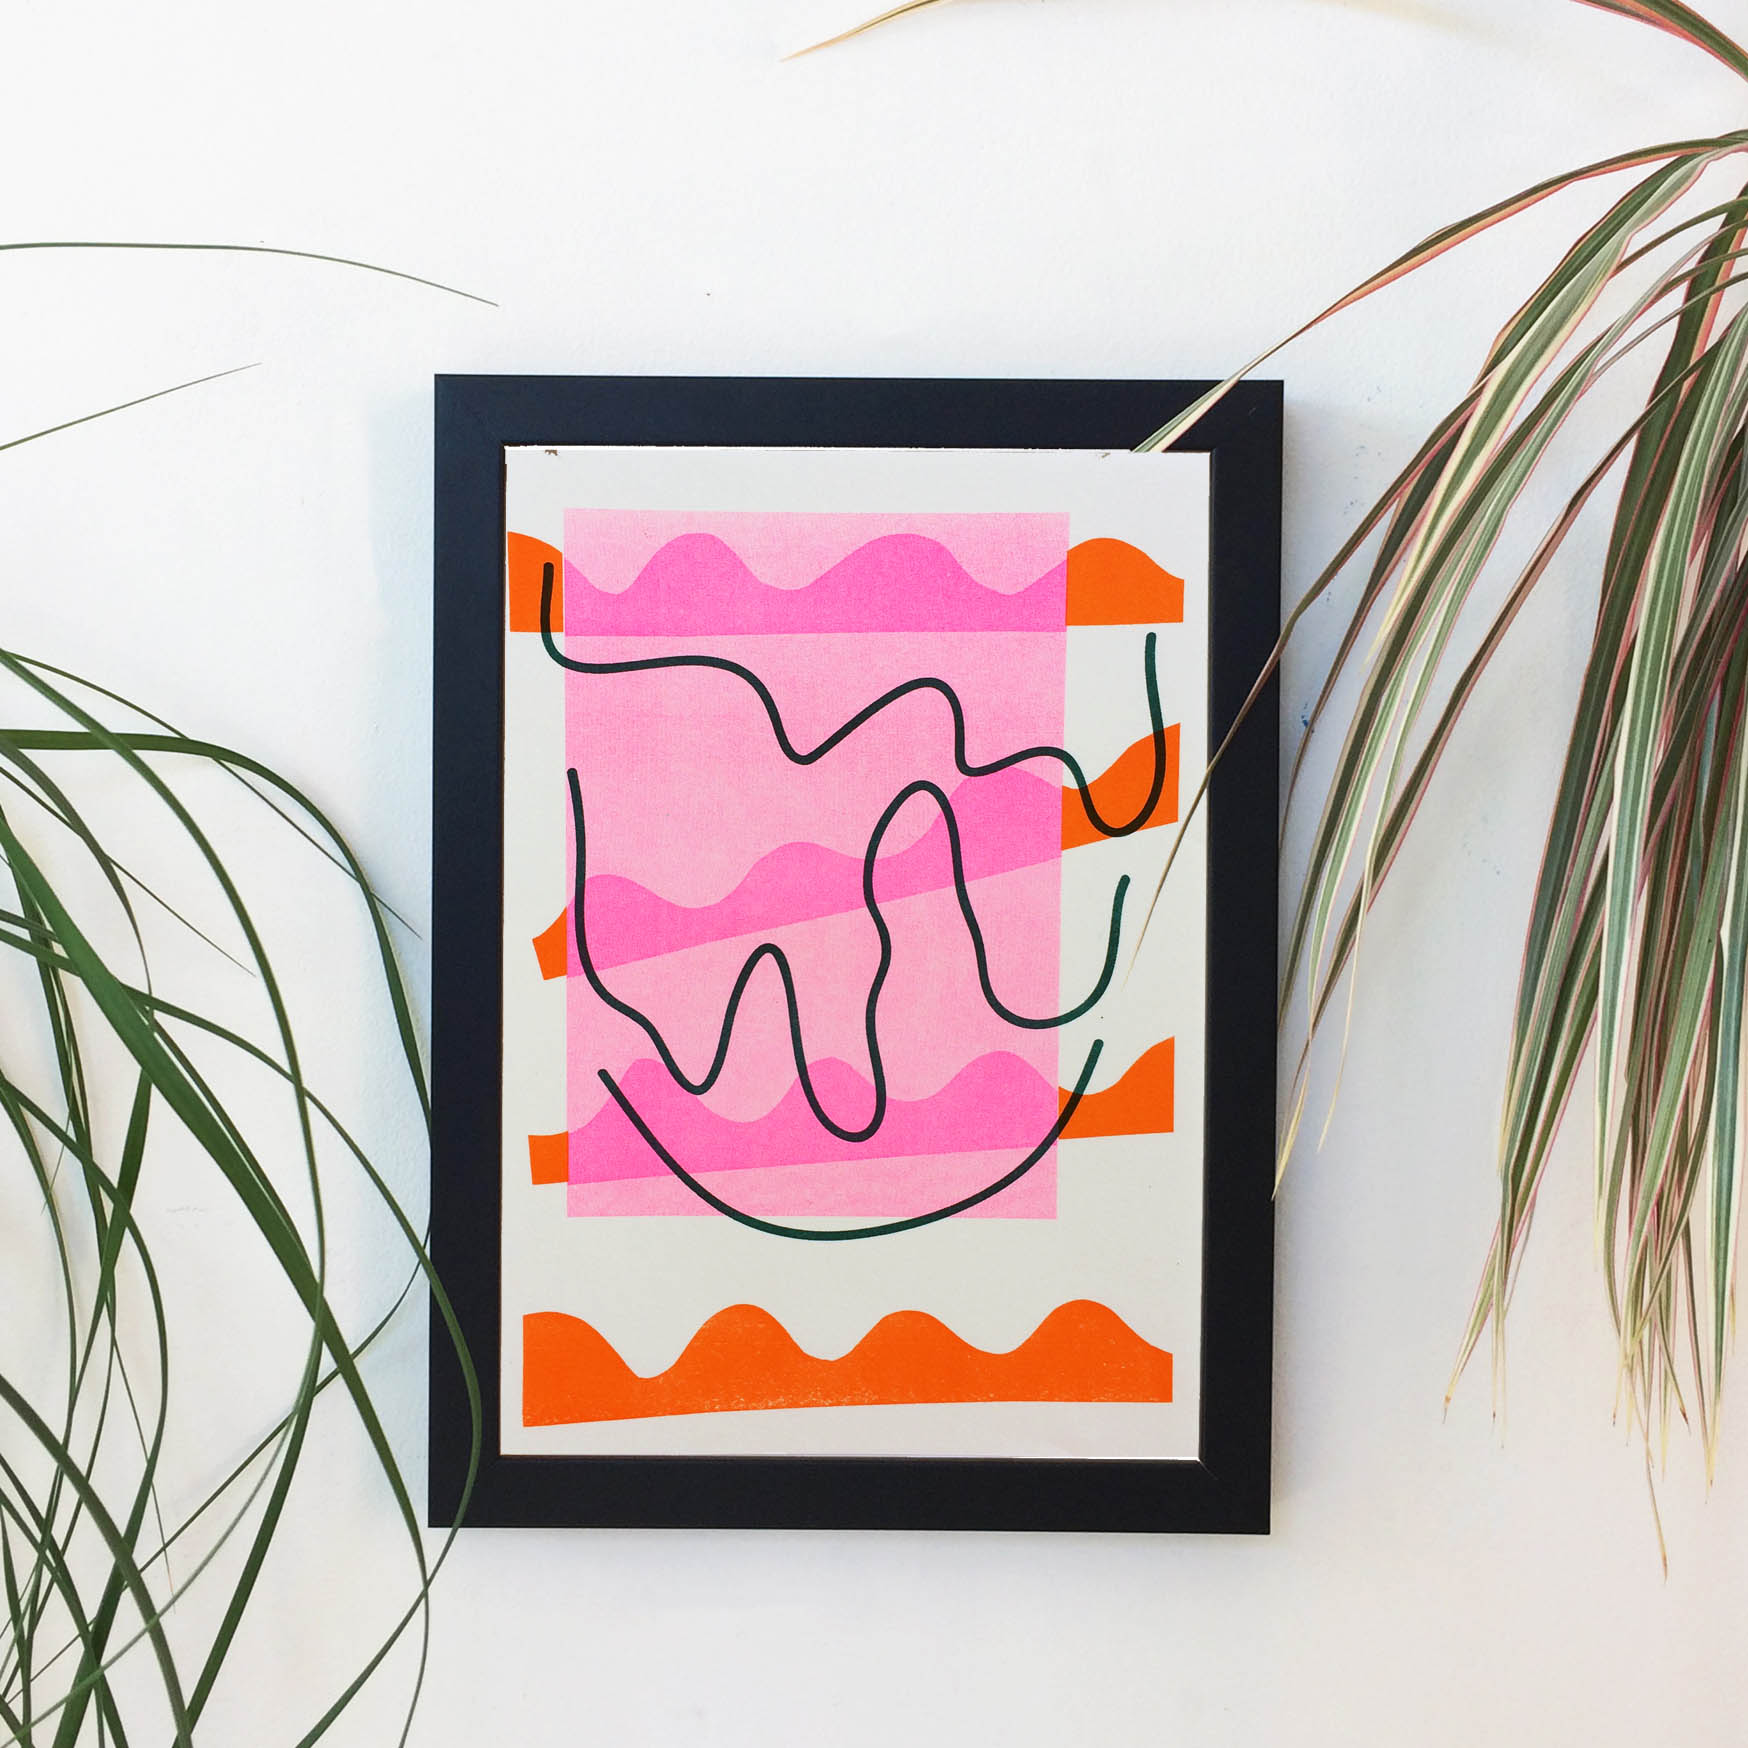 An abstract wiggly print in a frame in orange pink and teal